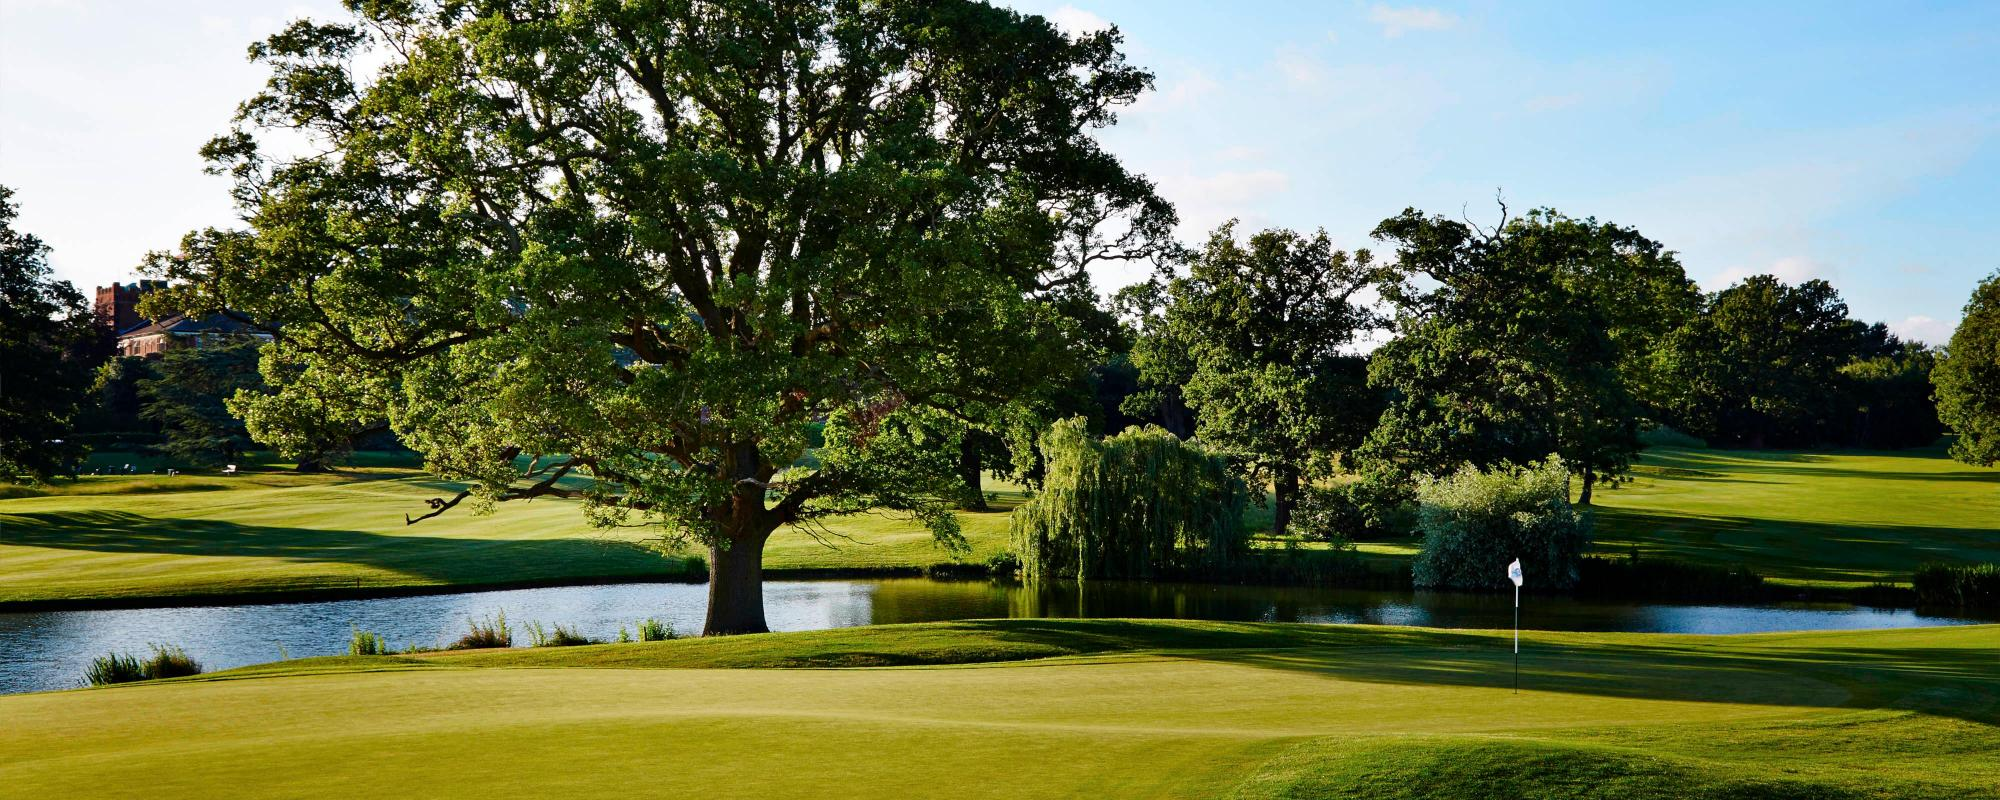 The Hanbury Manor Country Club's impressive golf course in brilliant Hertfordshire.